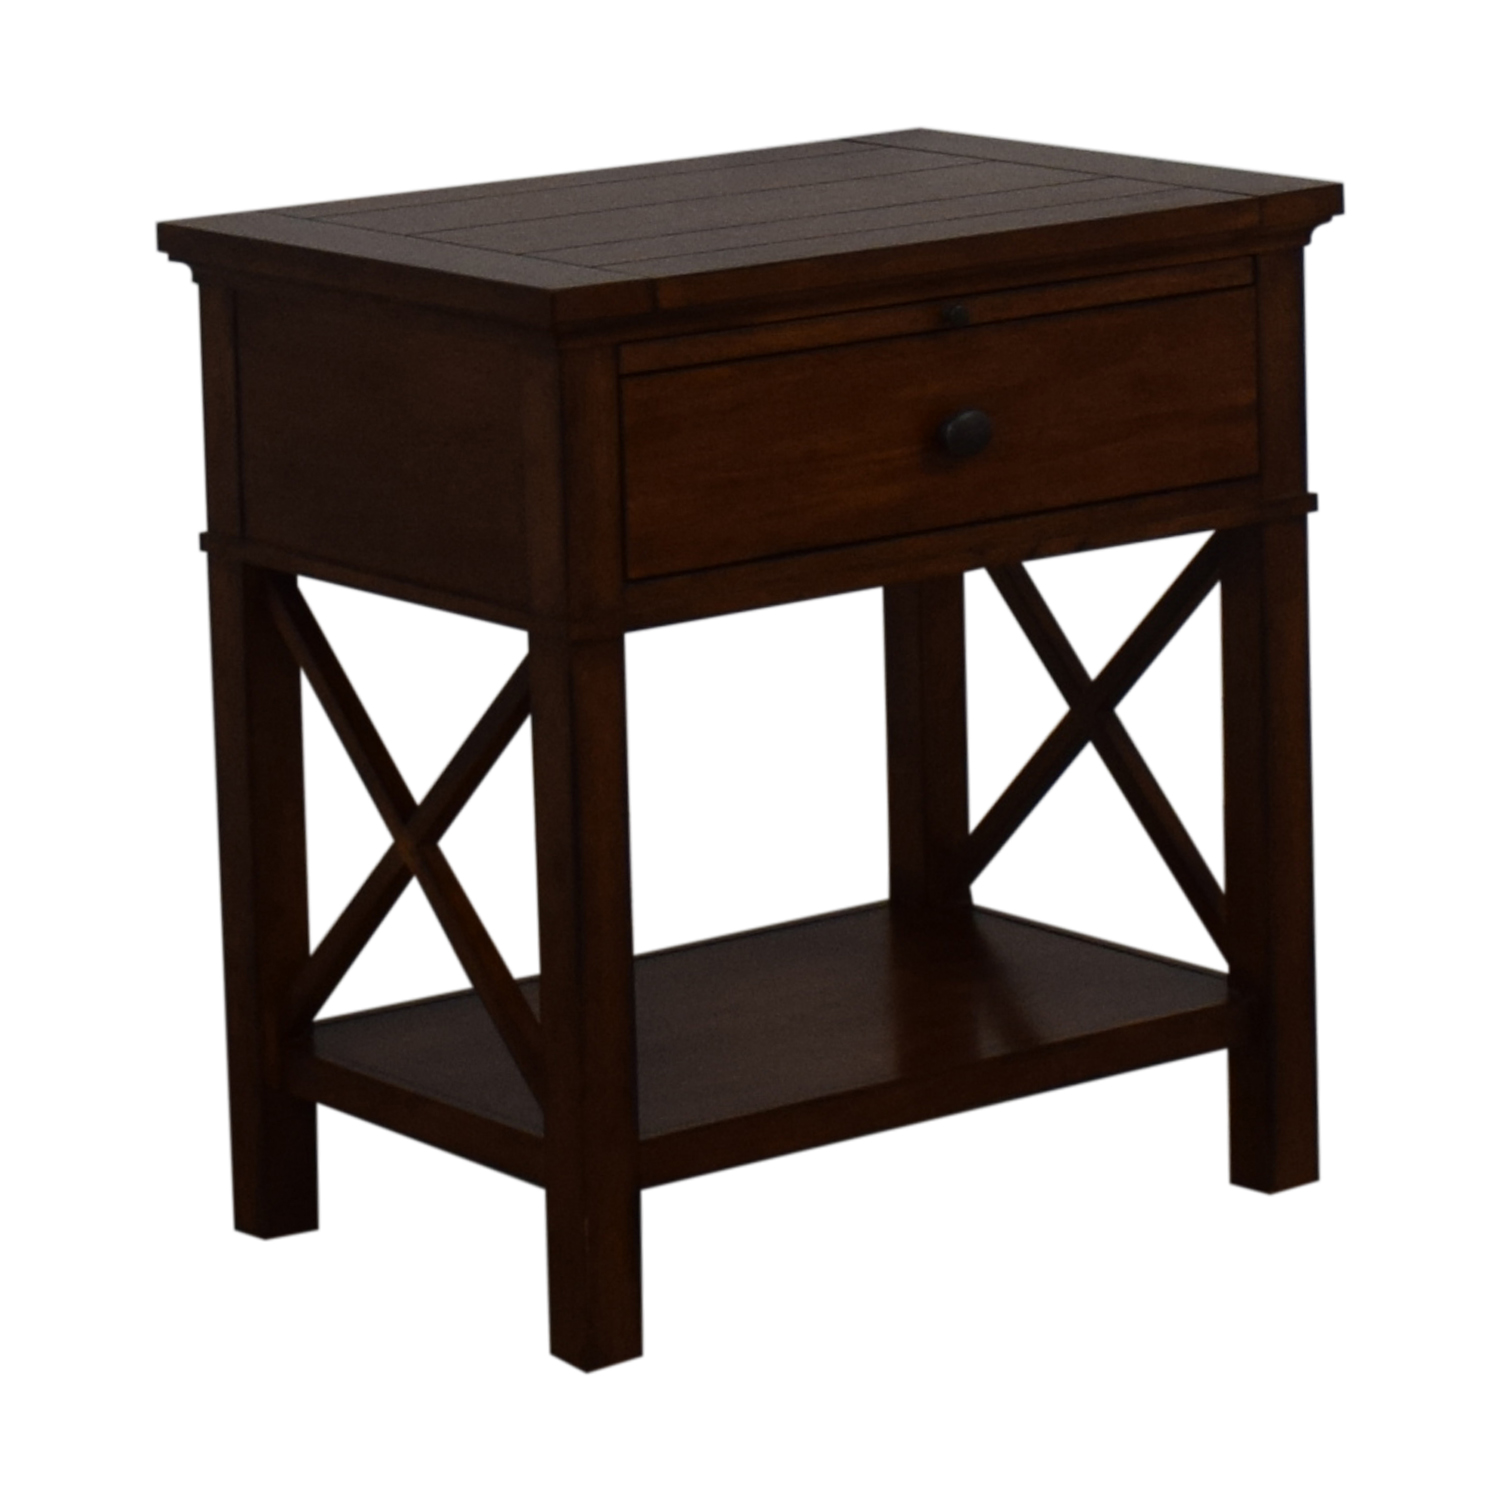 buy Ethan Allen Ethan Allen Single Drawer Nightstand online